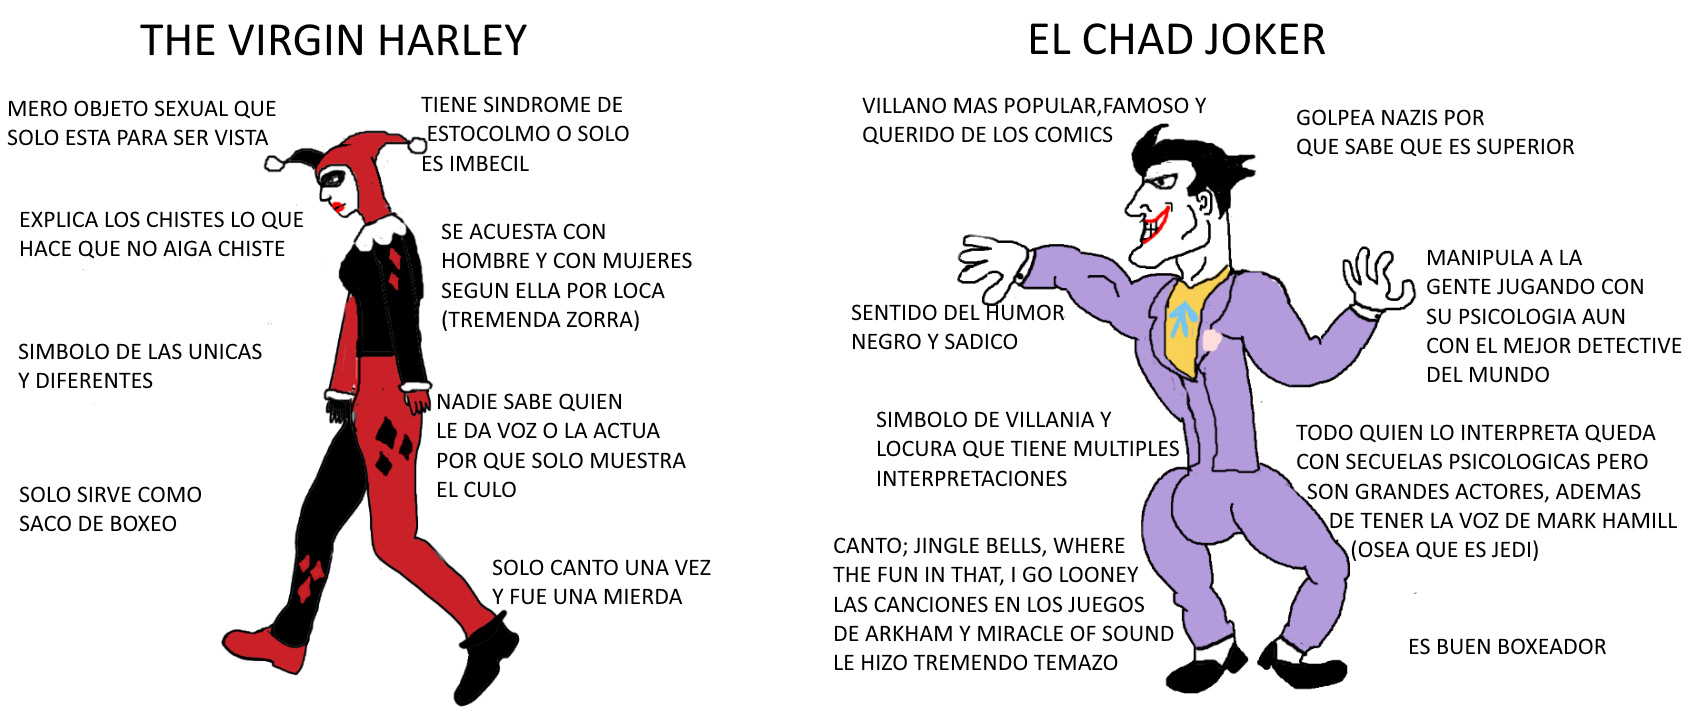 Why so chad? - meme